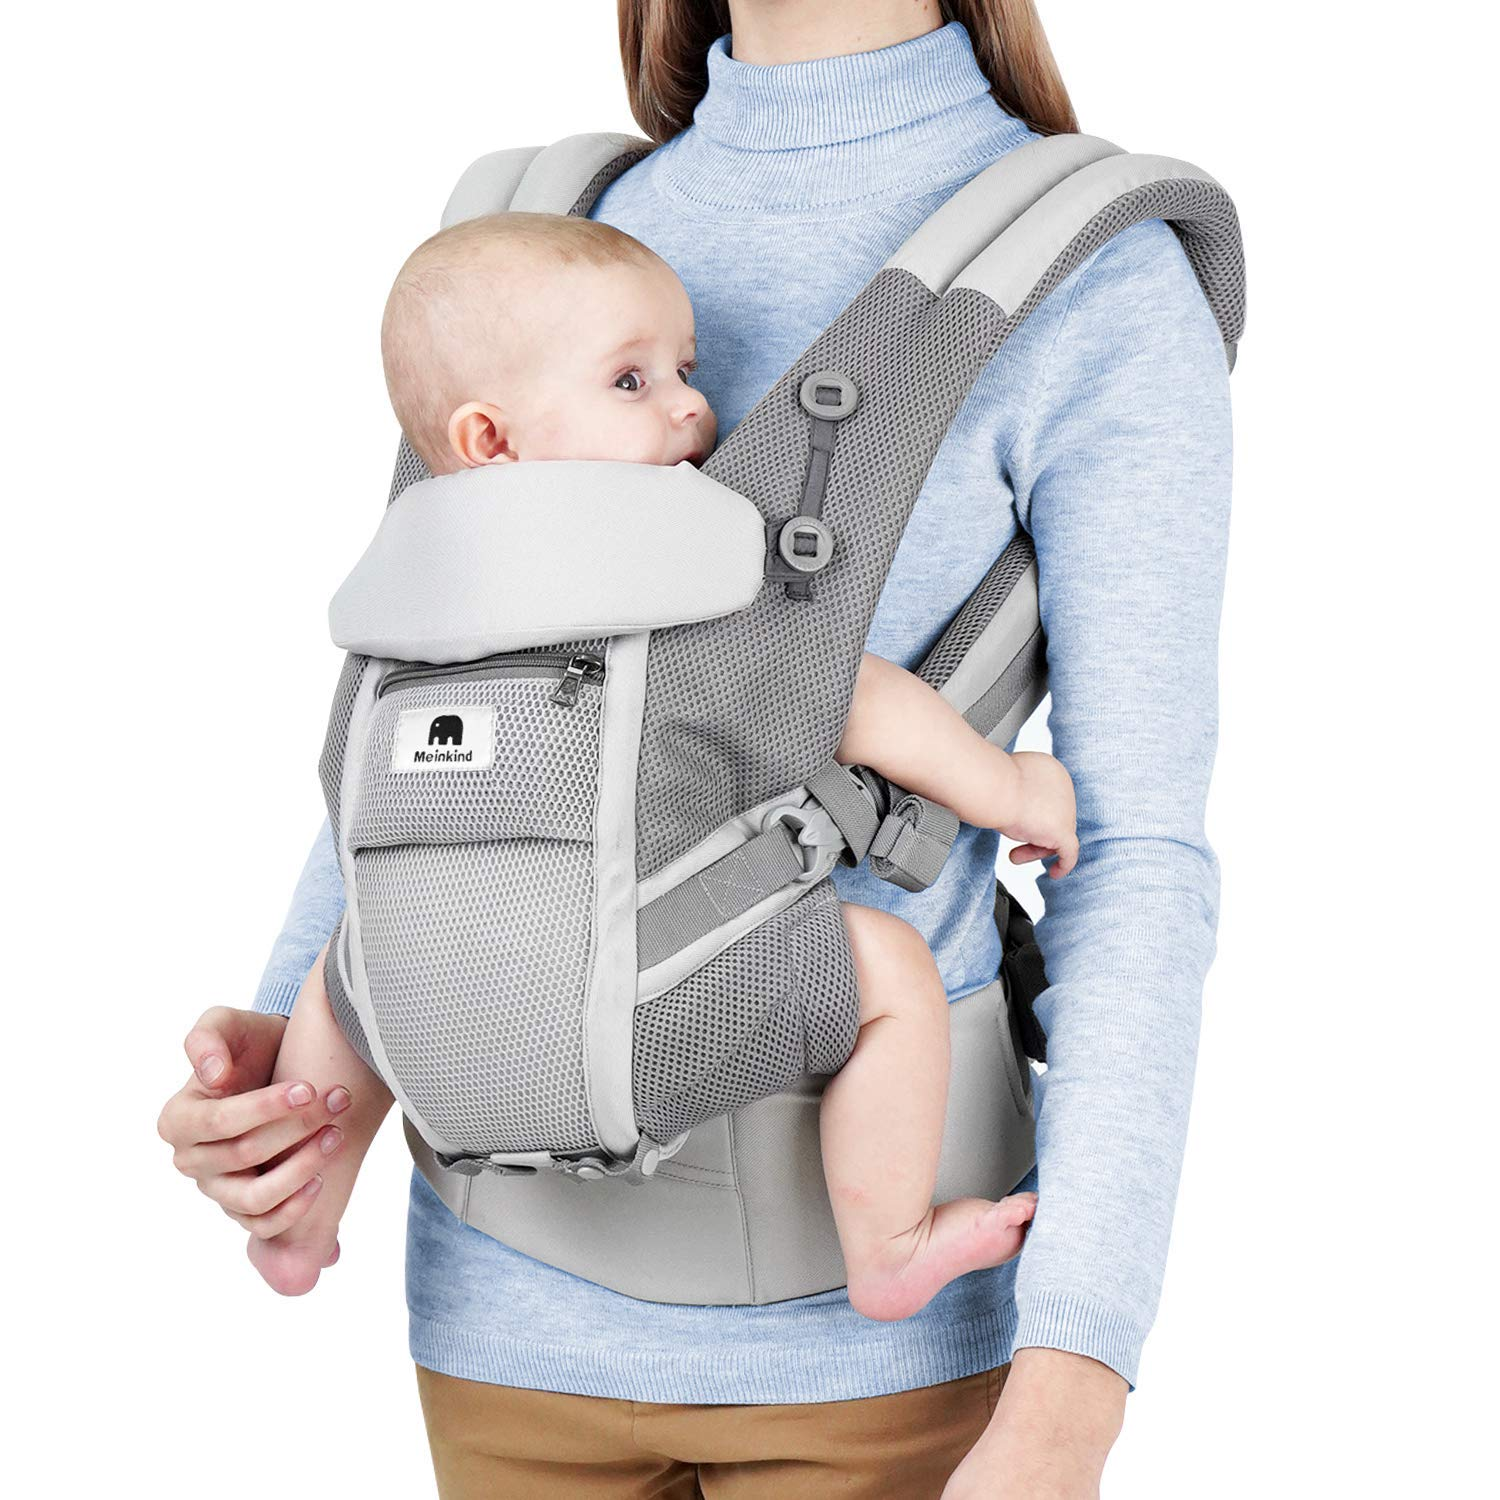 3.8 to 20 kg Baby Carrier for Newborn Puzzlos 4-in-1 Newborn to Toddler Baby Carrier Backpack and Front Baby Sling Carrier up to 48 Months Grey Model A